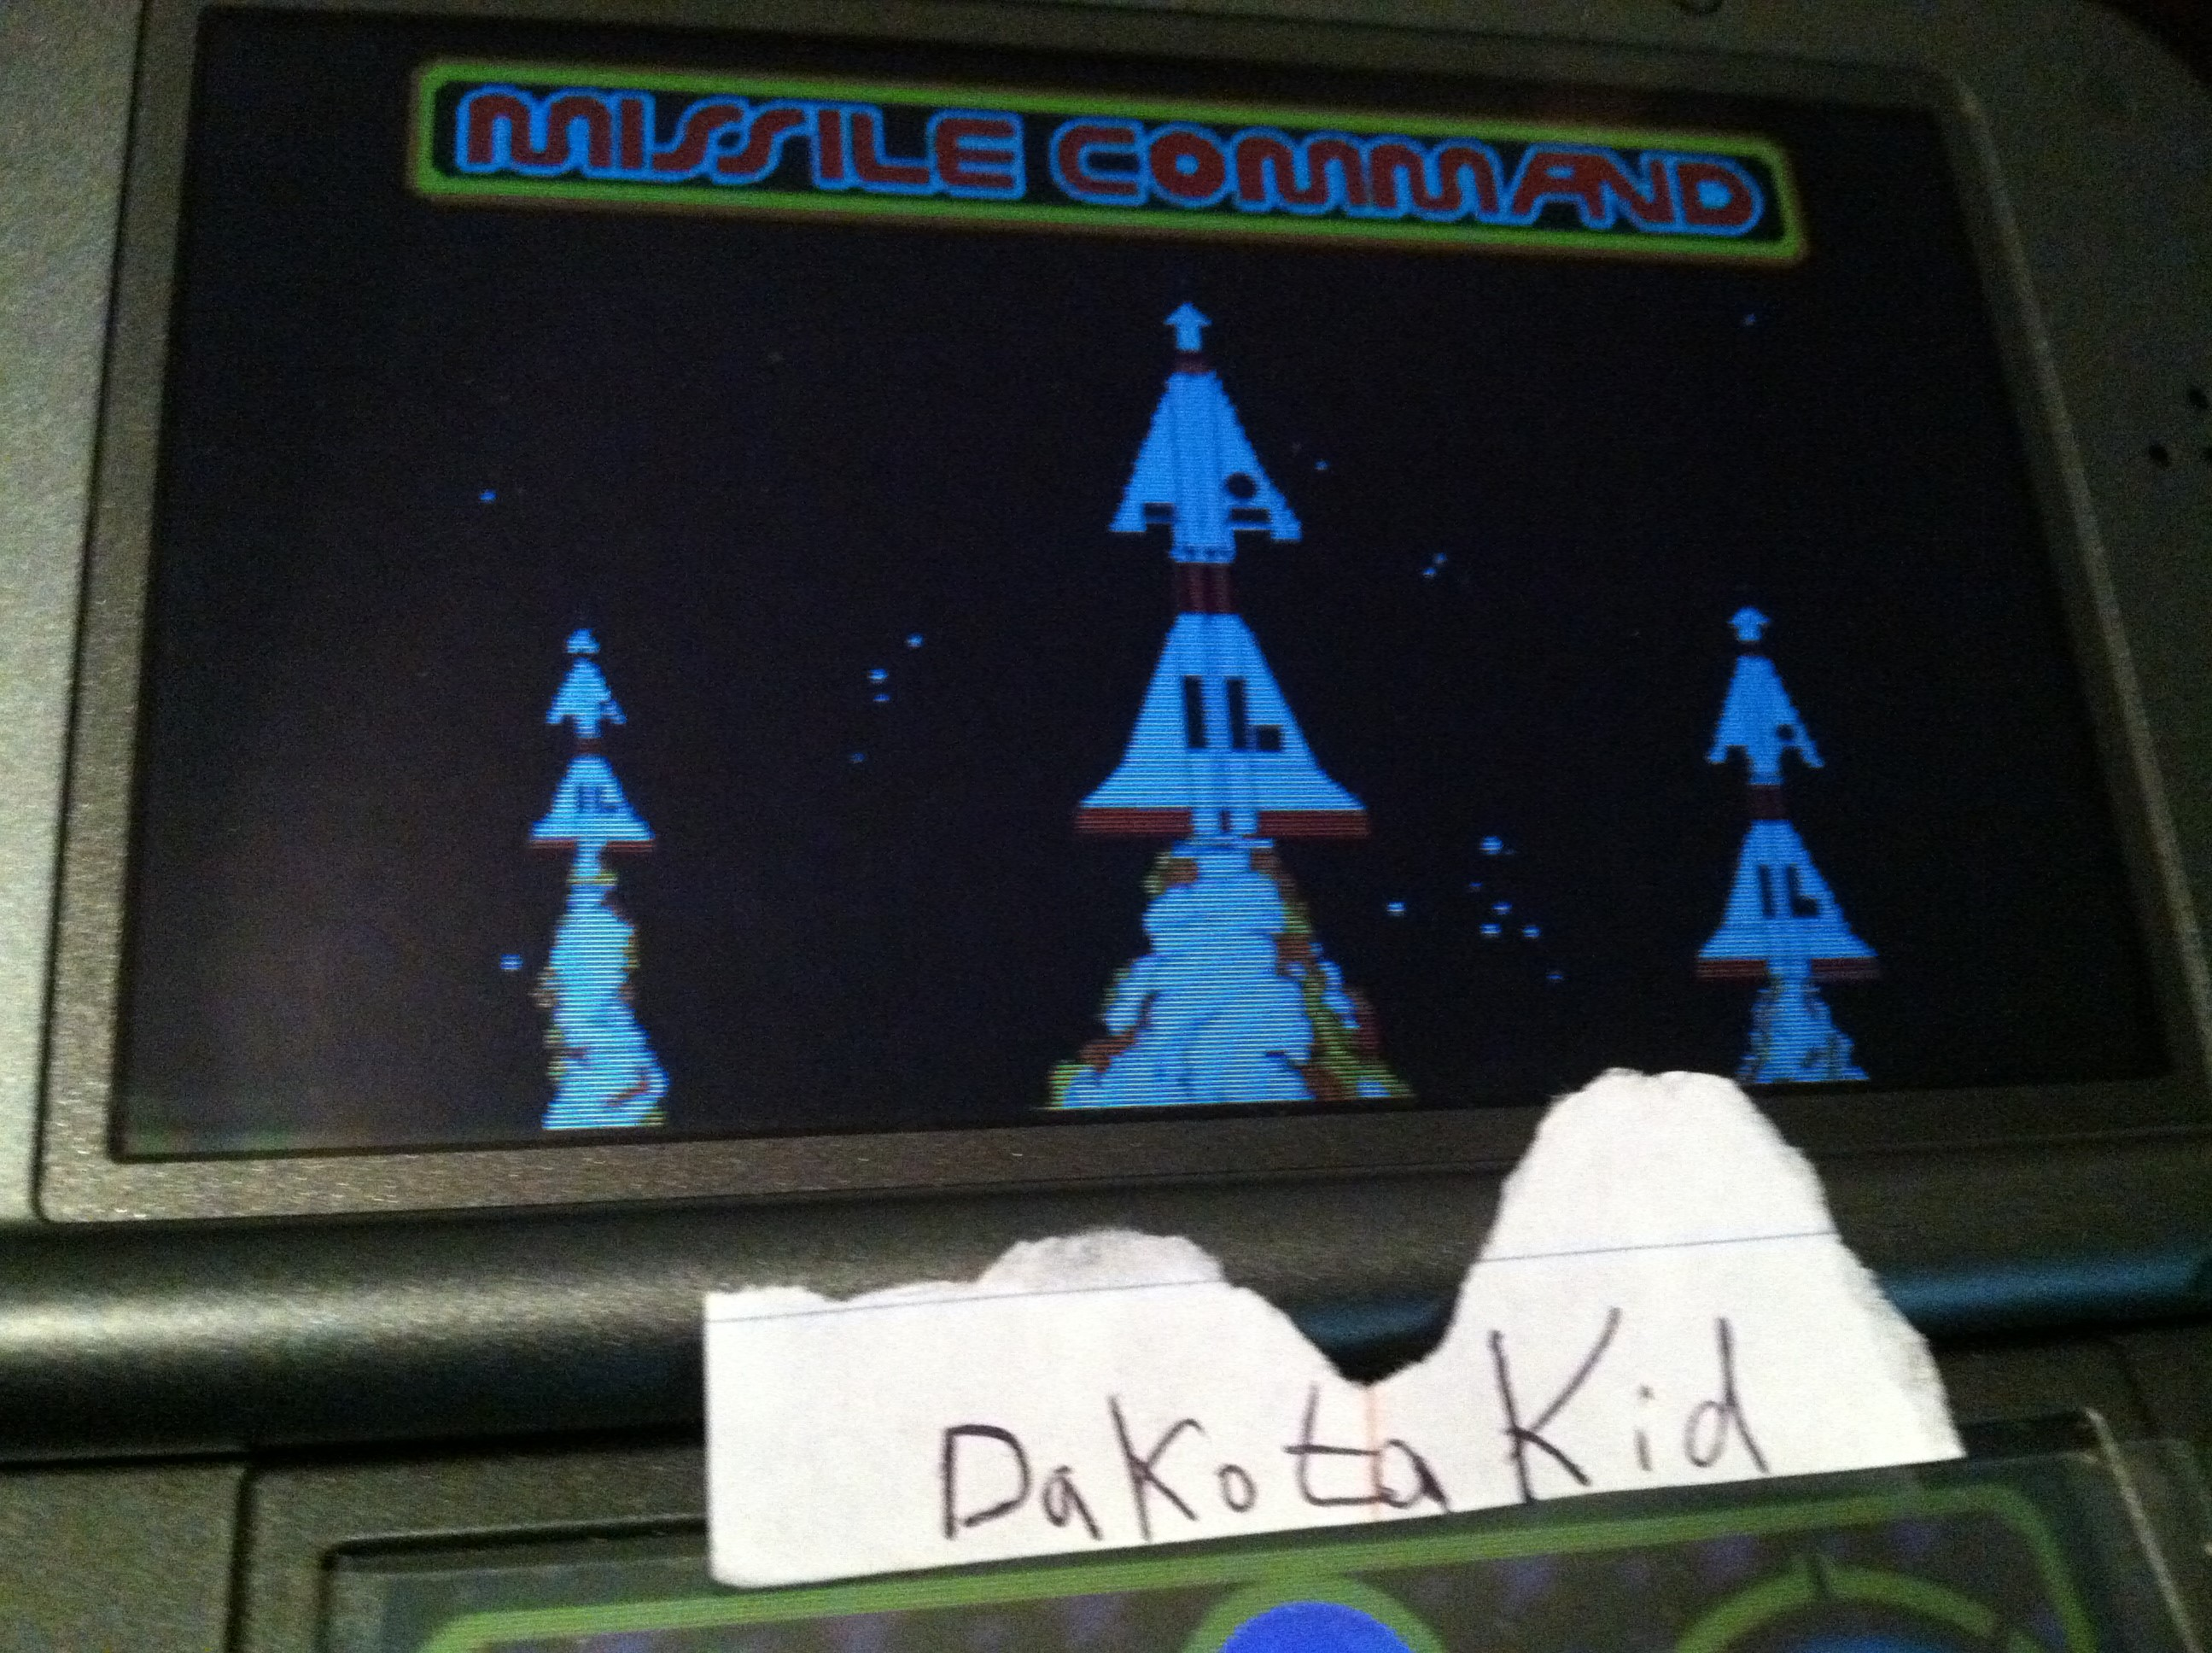 DakotaKid: Retro Atari Classics: Missile Command [Arcade] (Nintendo DS) 10,045 points on 2017-11-30 17:49:47